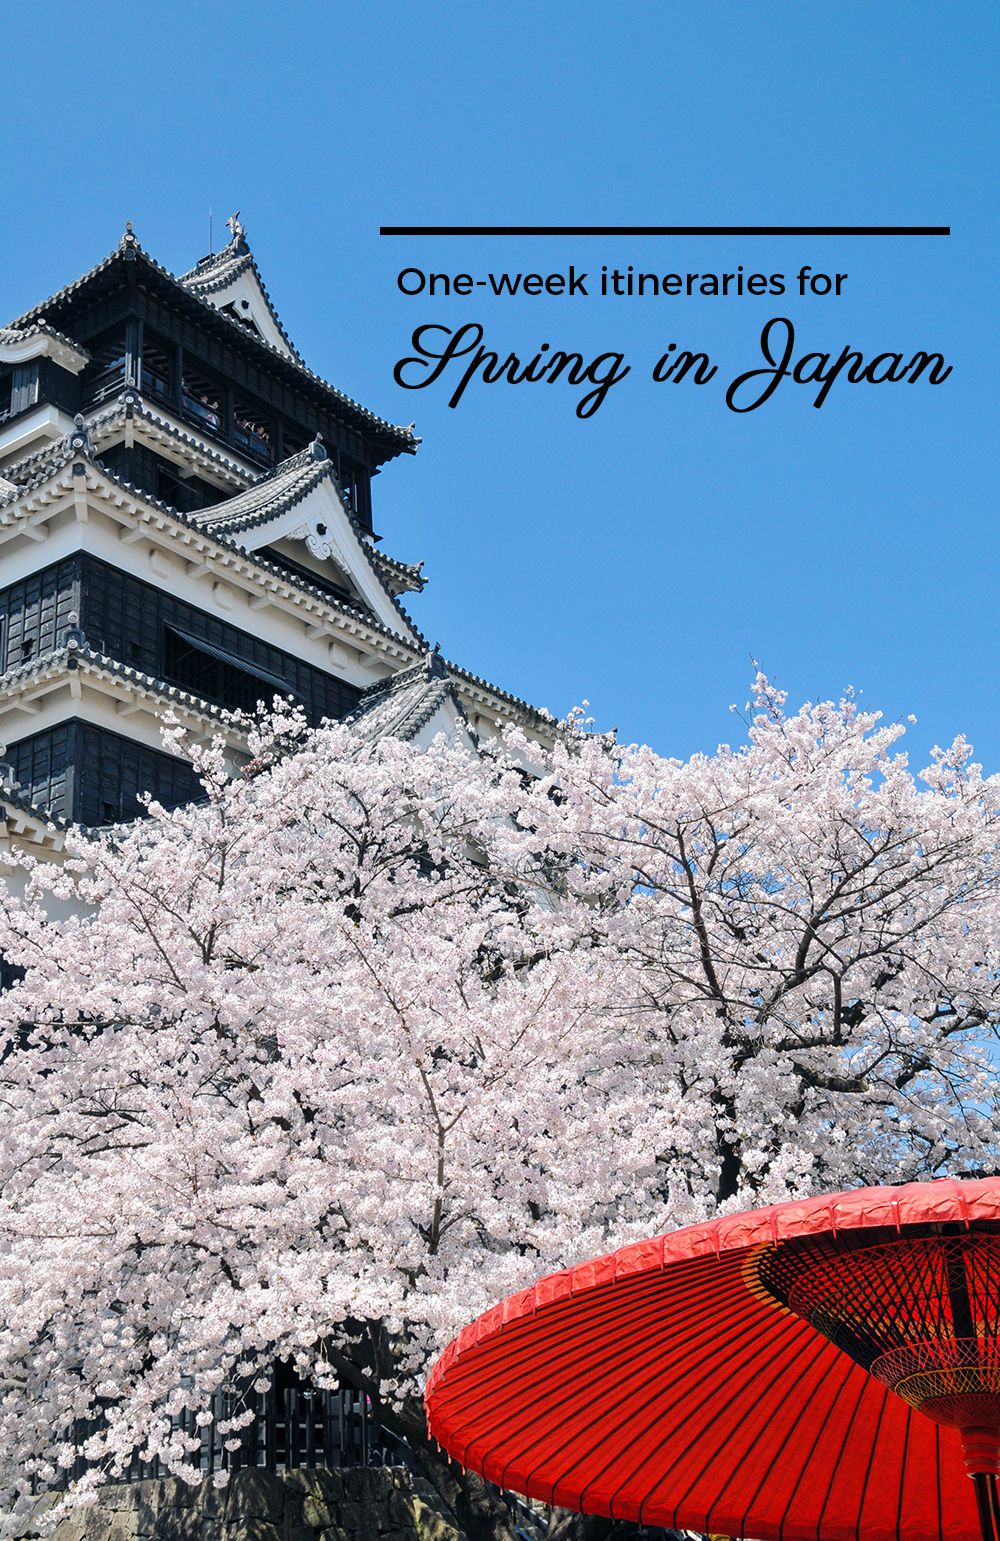 Spring In Japan 2019 When And Where To See The Cherry Blossoms Japan Itinerary Travel Destinations Asia Japan Travel Guide